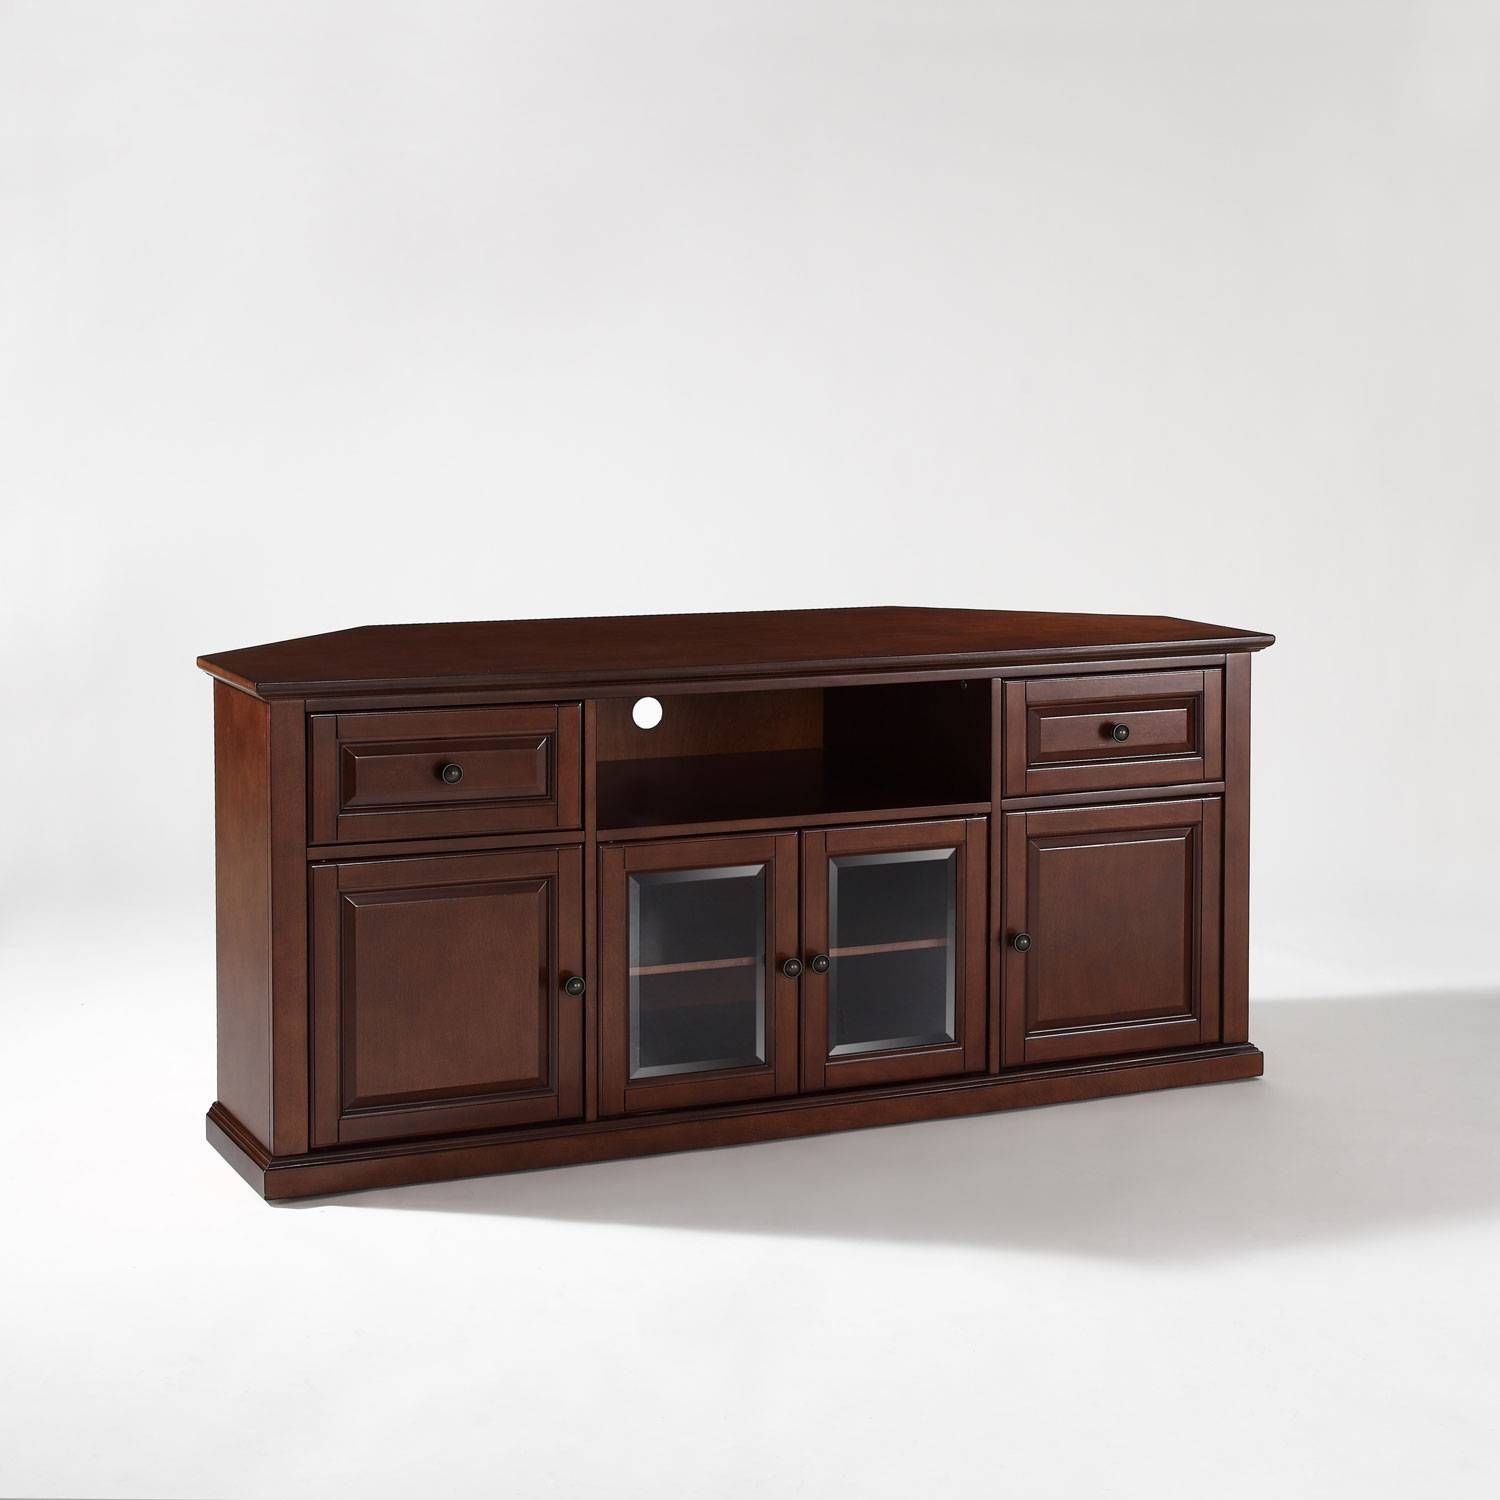 Corner Tv Cabinets Tv Stands And Cabinets | Bellacor For Corner Tv Cabinets (View 6 of 15)